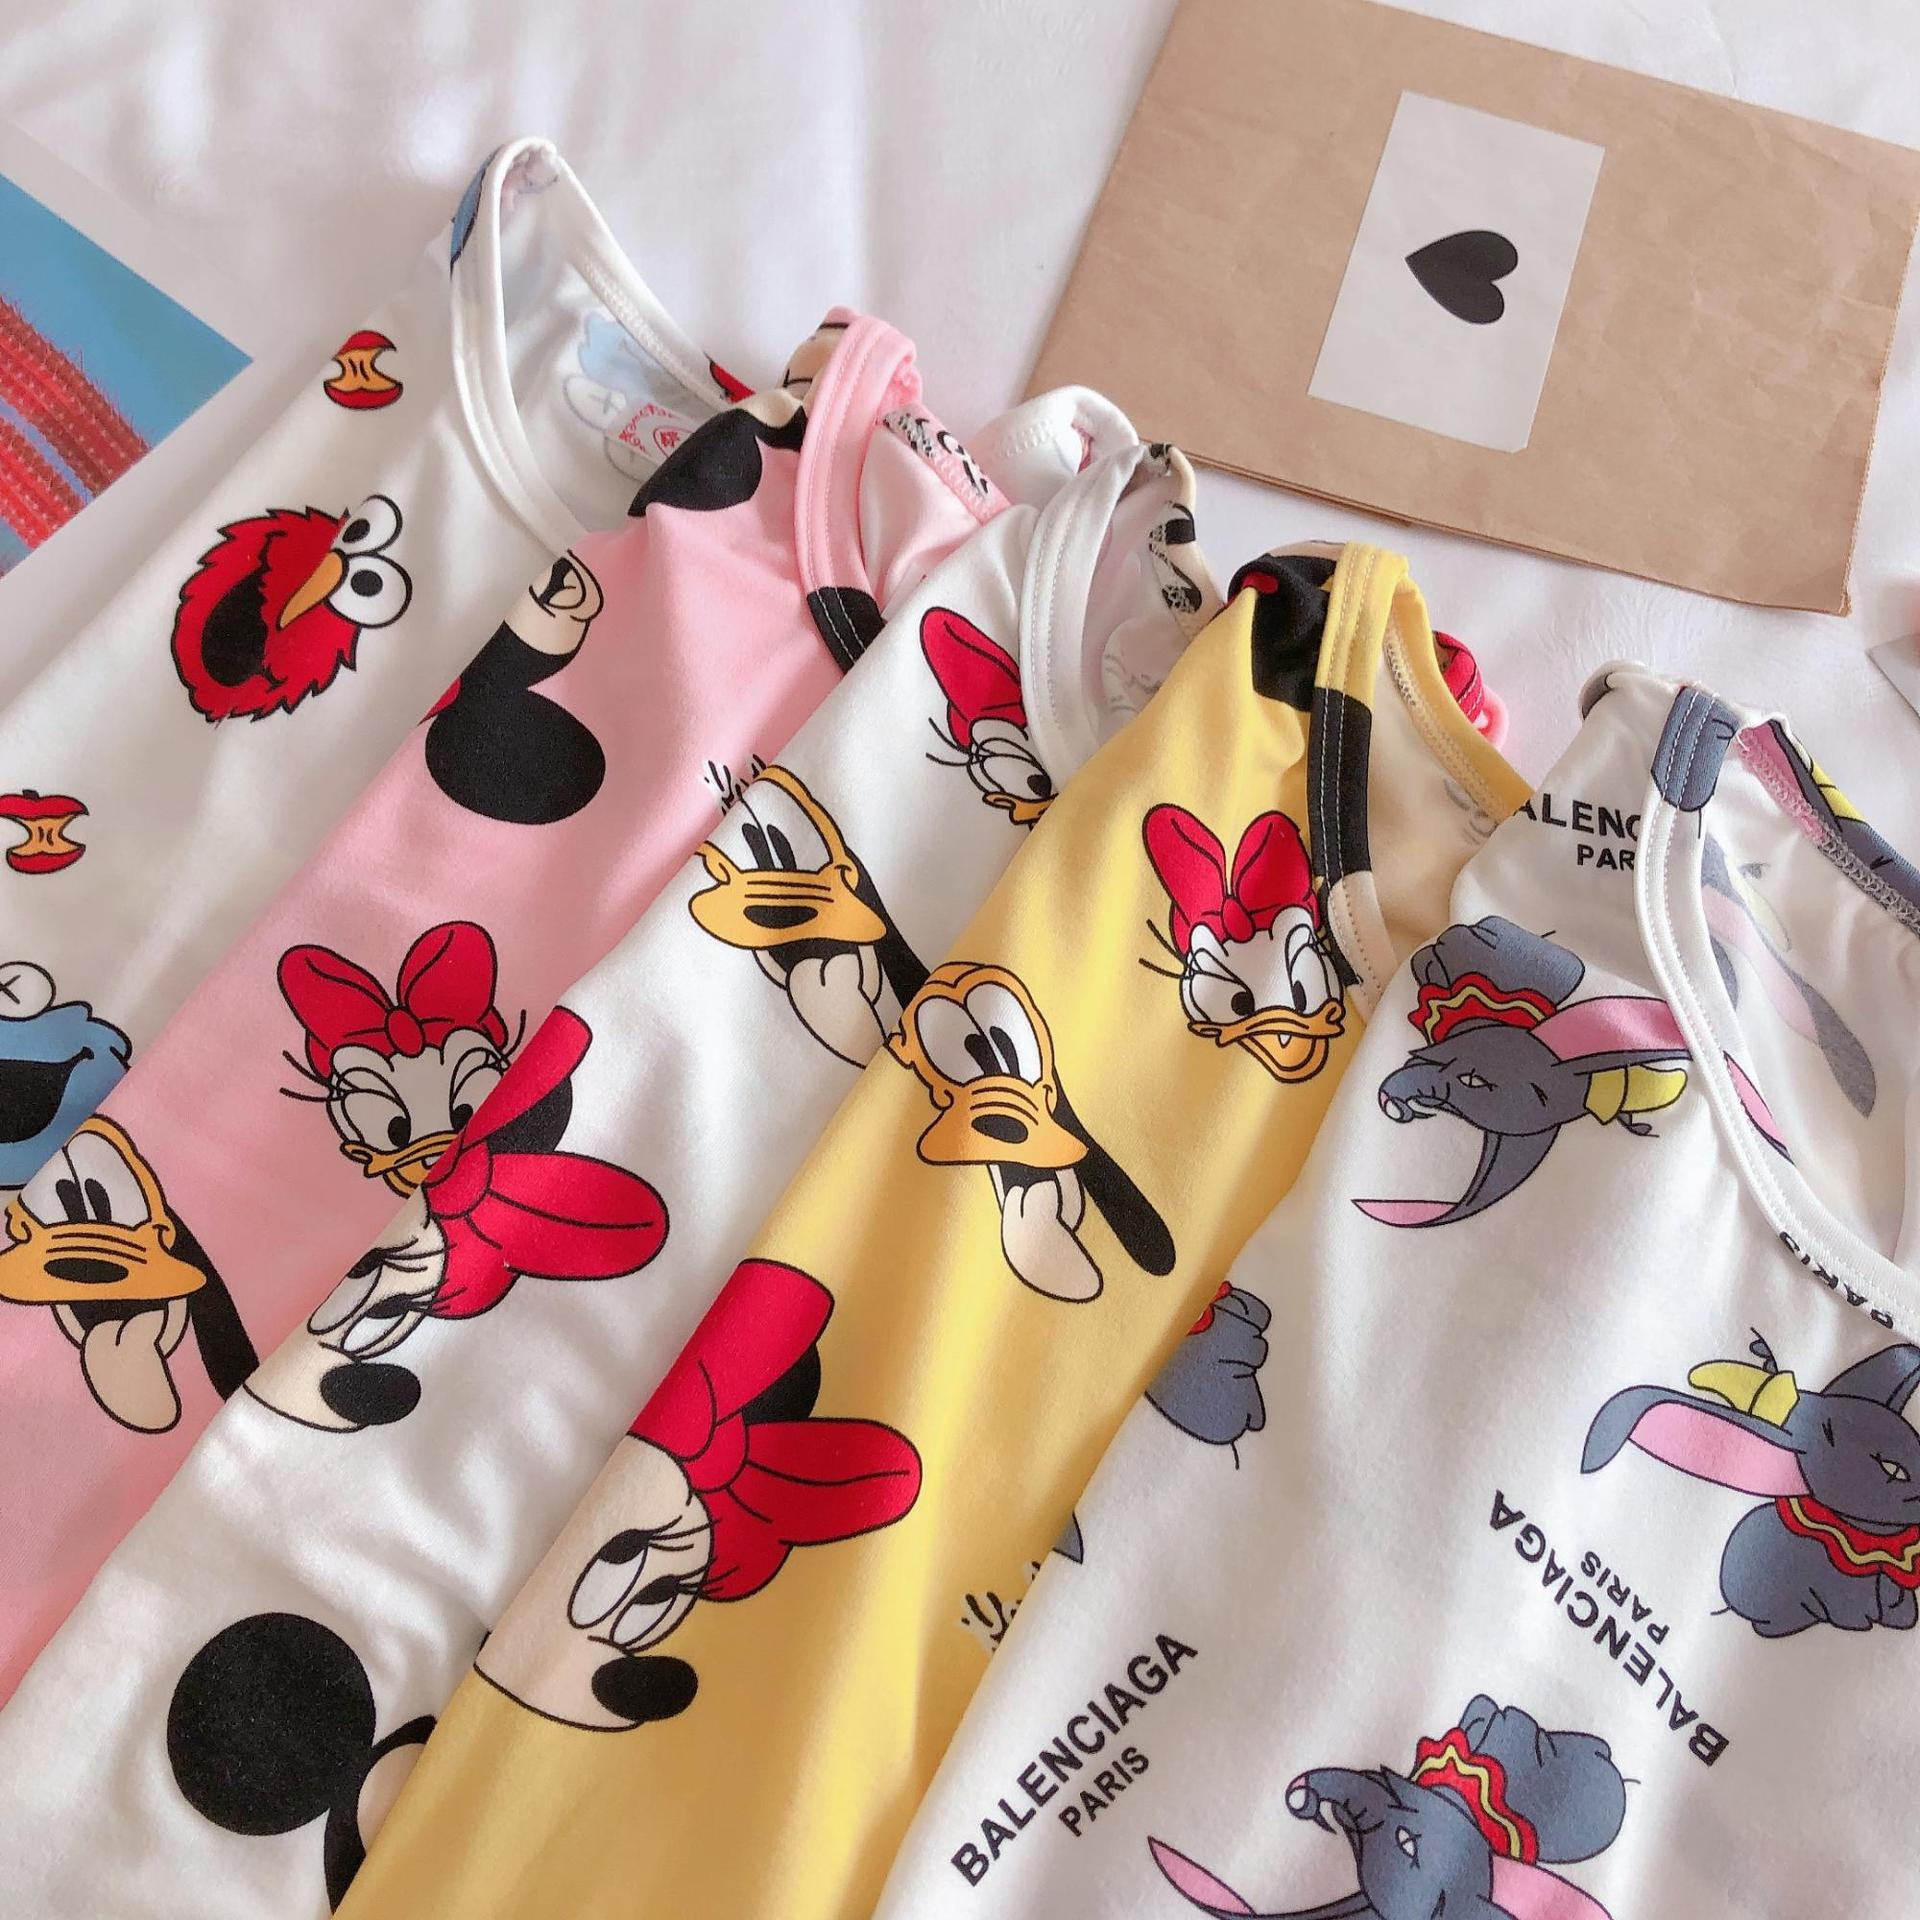 Sesame Street Pajamas Women's Autumn Korean-style Hot Selling Cartoon Dumbo Long Sleeve Trousers Storage Bag Qmilch Home Wear